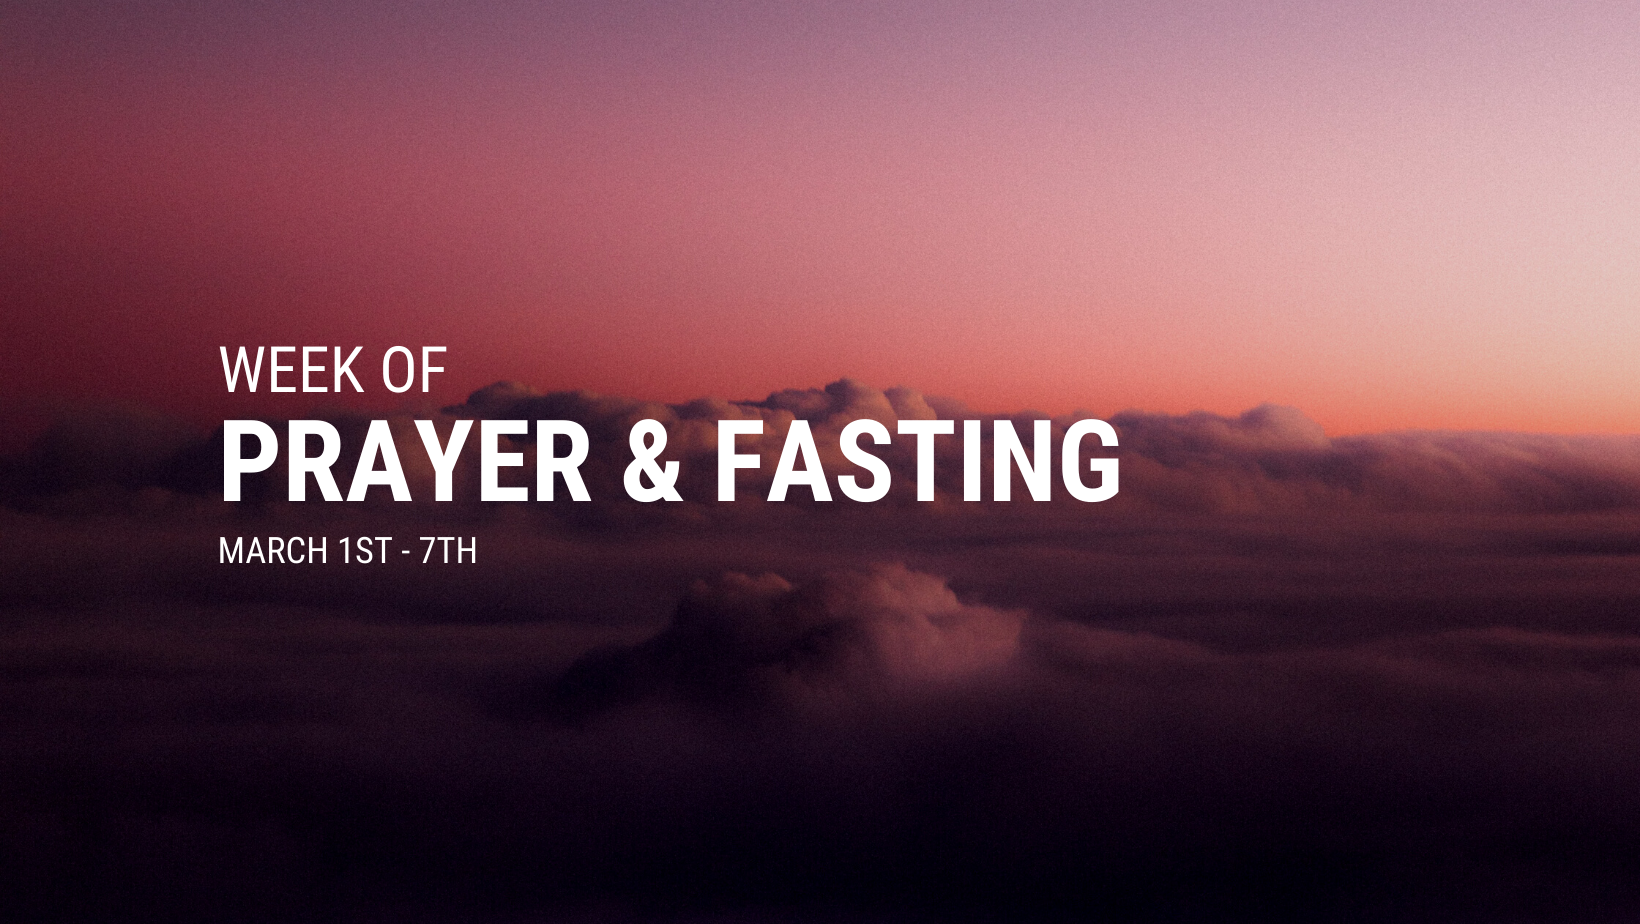 week of prayer and fasting 2021